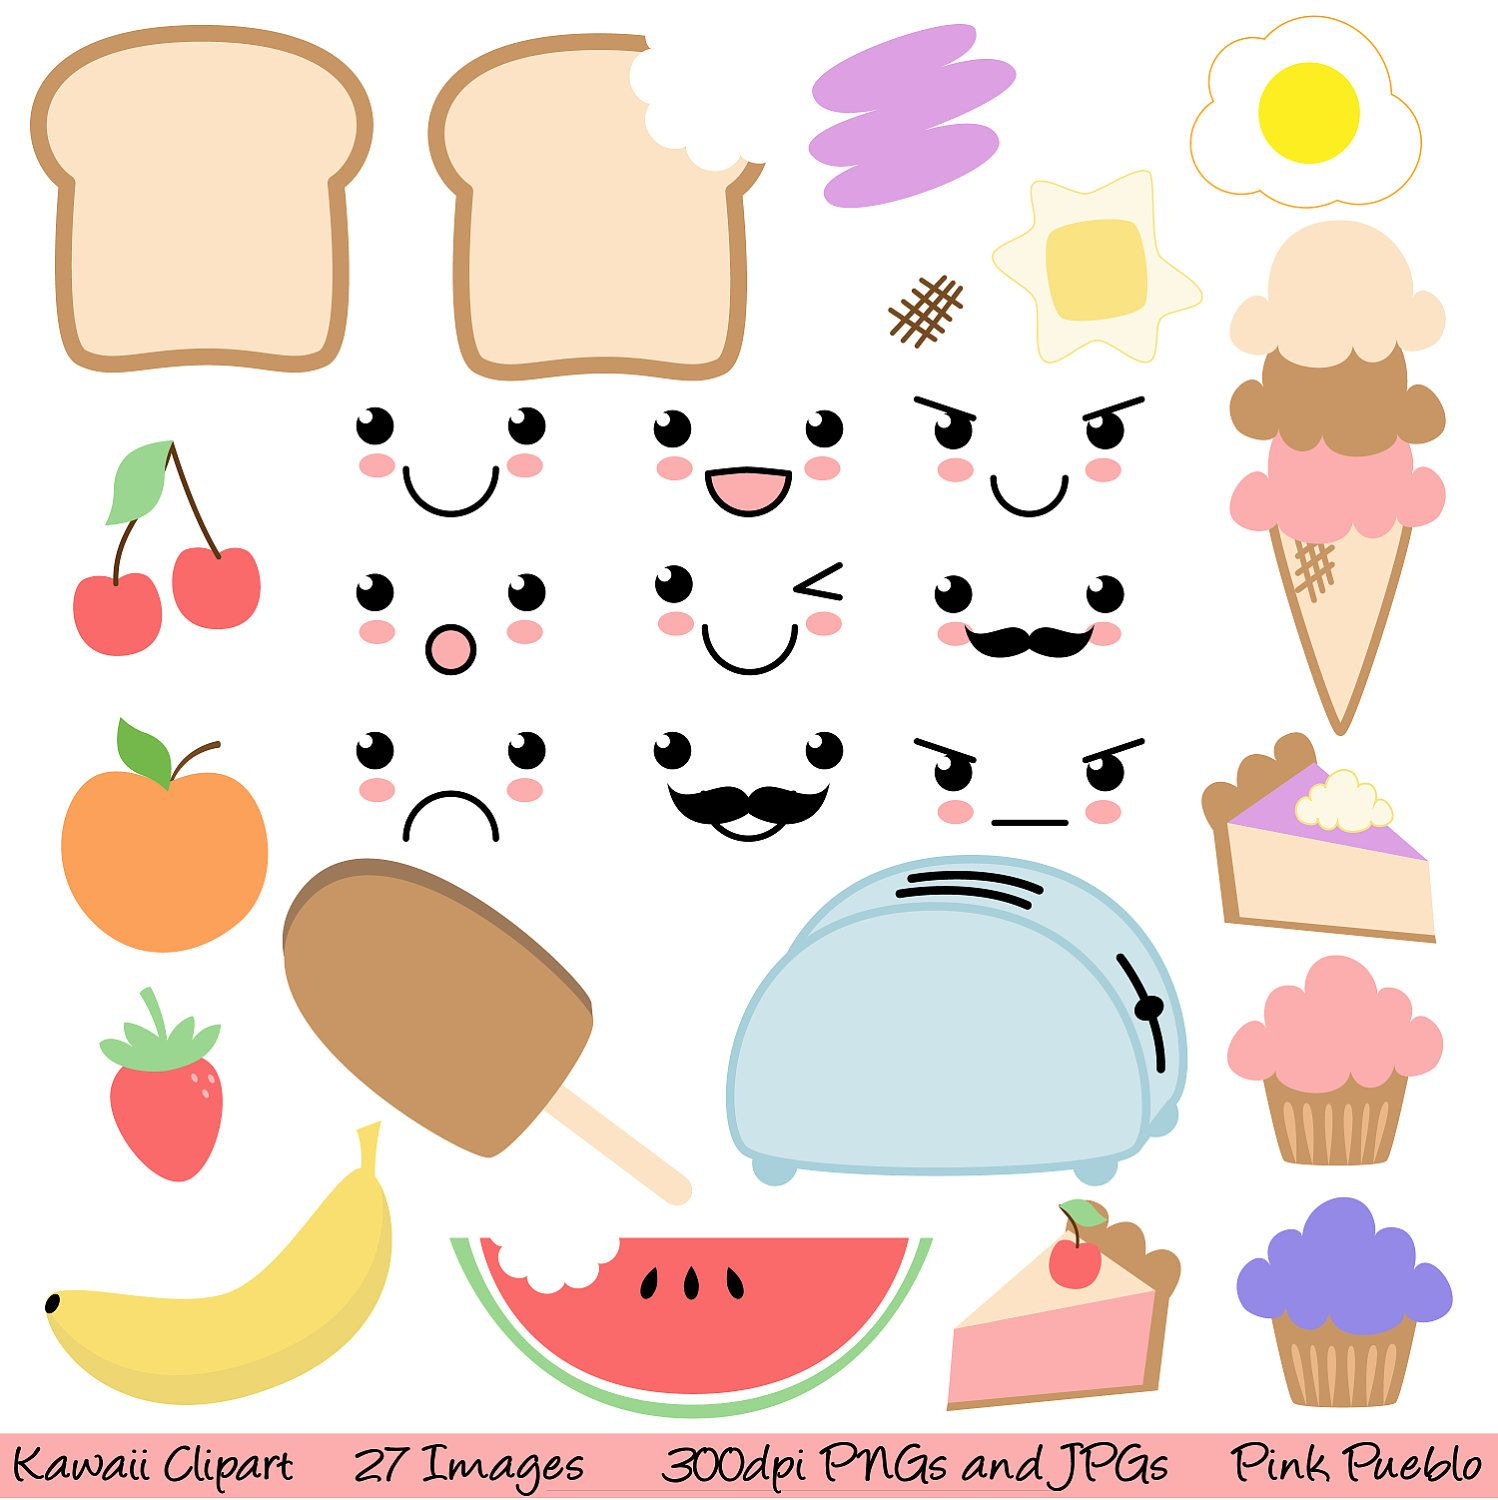 Food clip art commercial. Asteroid clipart kawaii